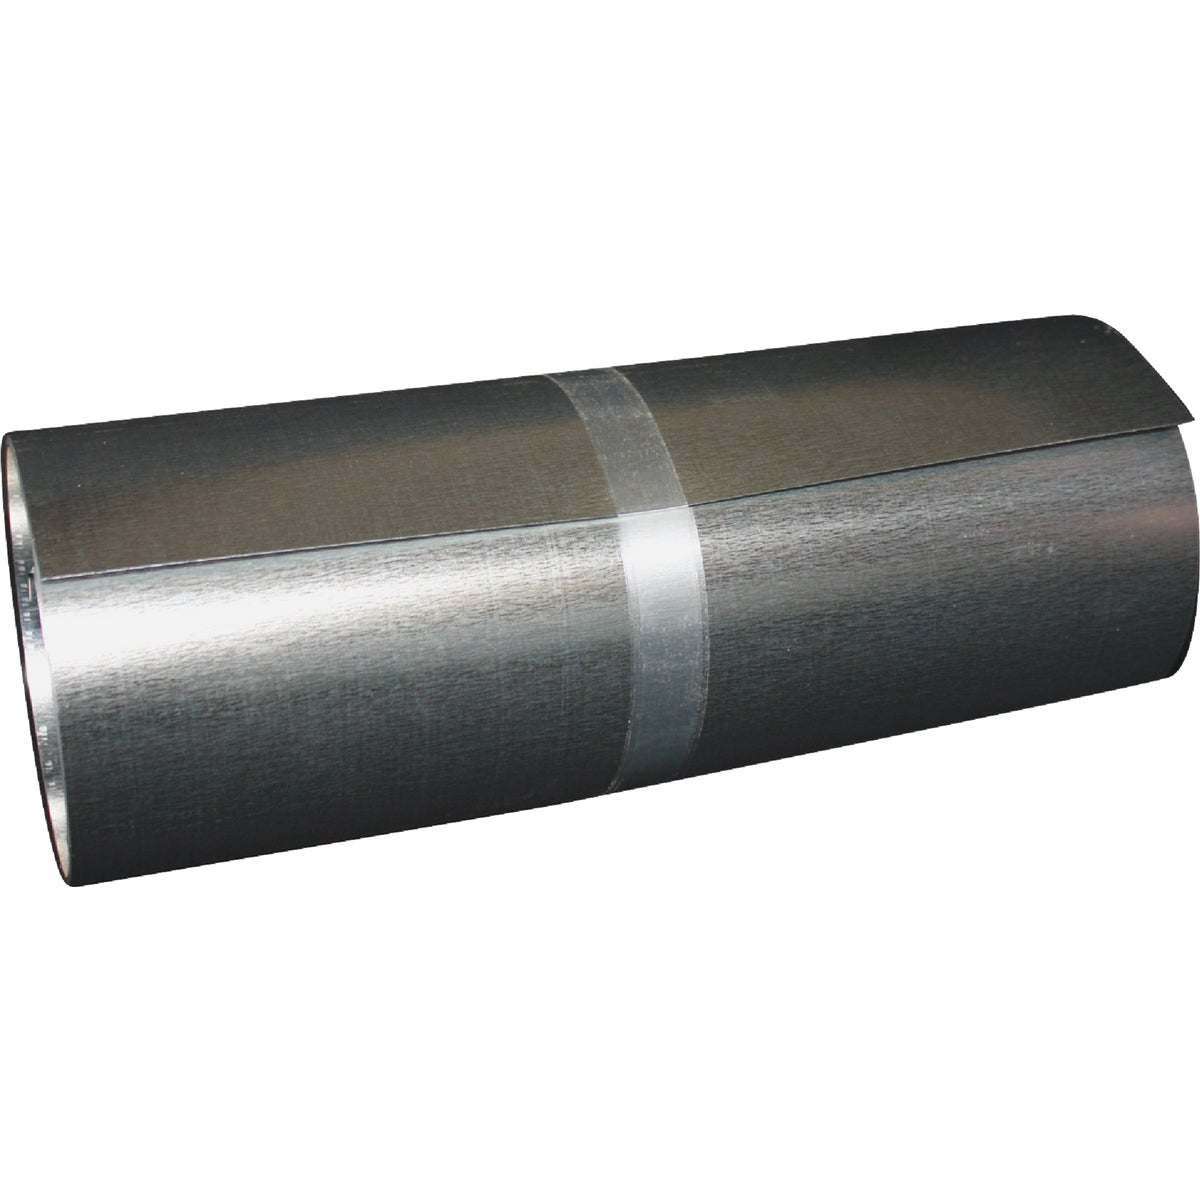 "6""X25' GALV ROLL VALLEY - 30015-GV10 by Klauer Mfg Co"